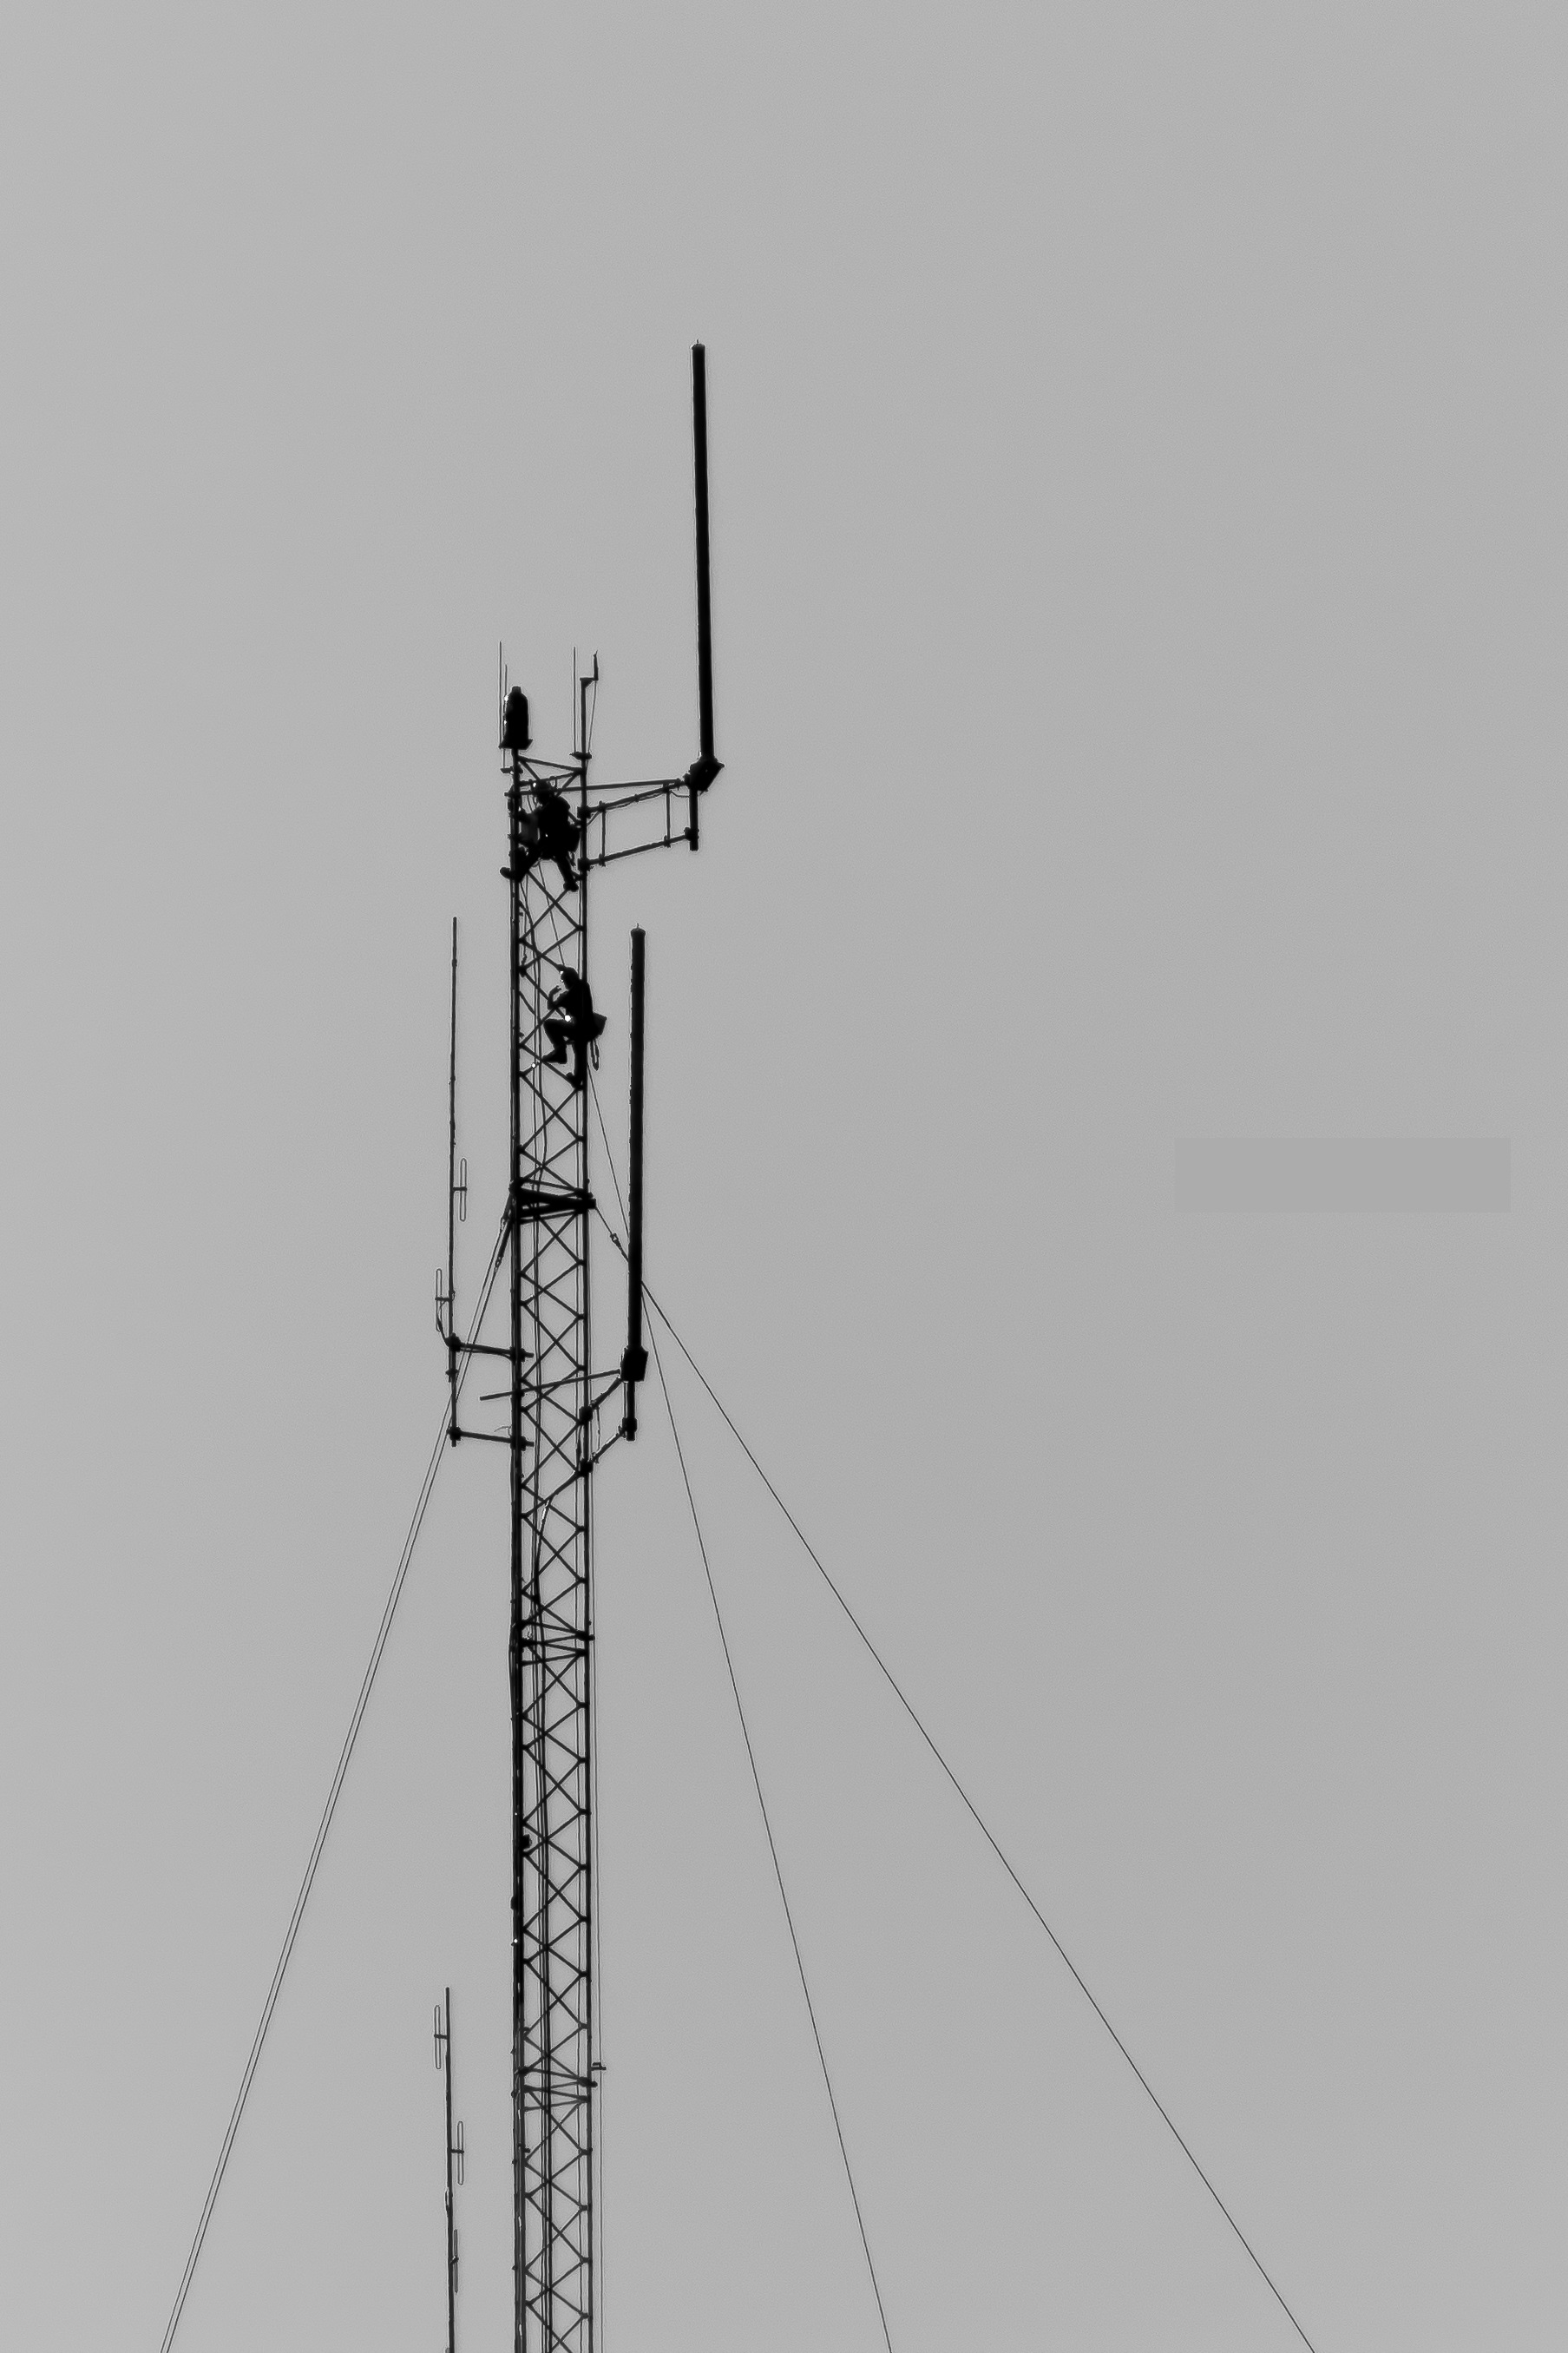 Elite Tower, LLC - Elite Tower, LLC provides communication tower services for the Southeast and beyond. Located in the coastal empire of Savannah, GA, Elite Tower specializes in line and antenna installations and keeping towers equipped with the most up to date technology. Elite Tower, LLC is a family business that values close customer relationships and quality control. Elite Tower is dedicated to its customers in providing high end work in a timely manner.